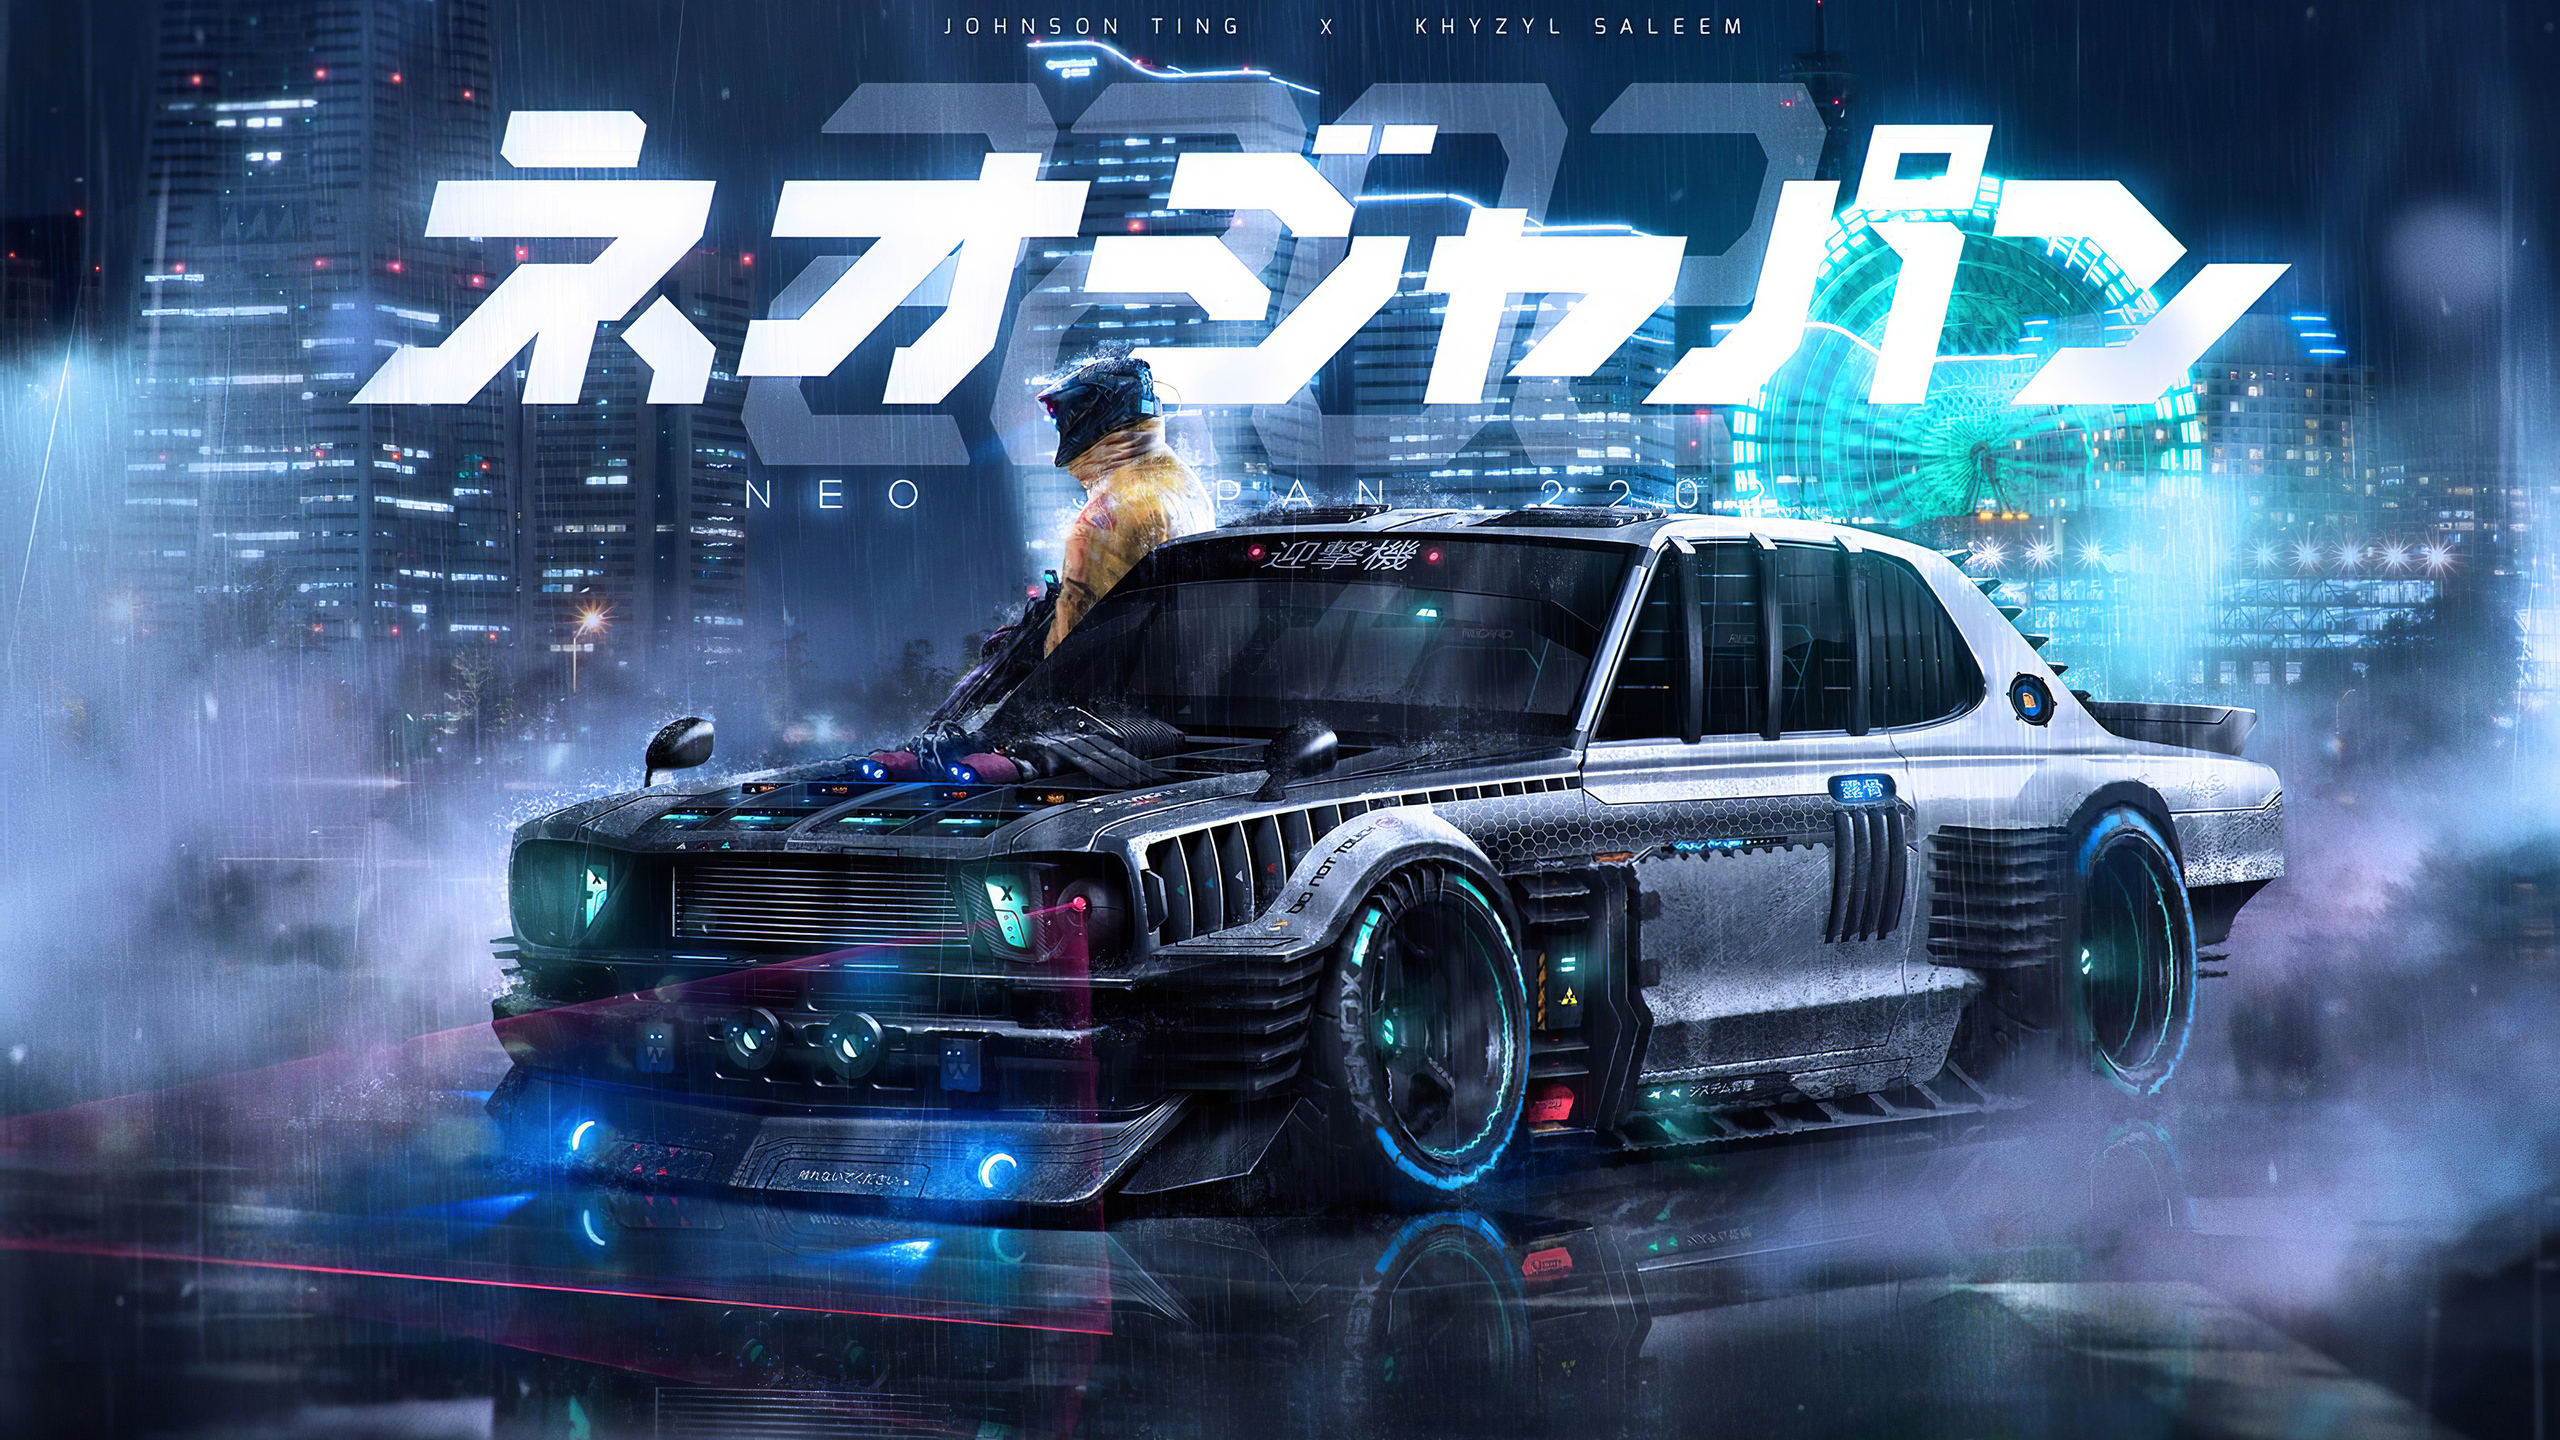 2560x1440 Neo Japan 2202 4k 1440p Resolution Hd 4k Wallpapers Images Backgrounds Photos And Pictures